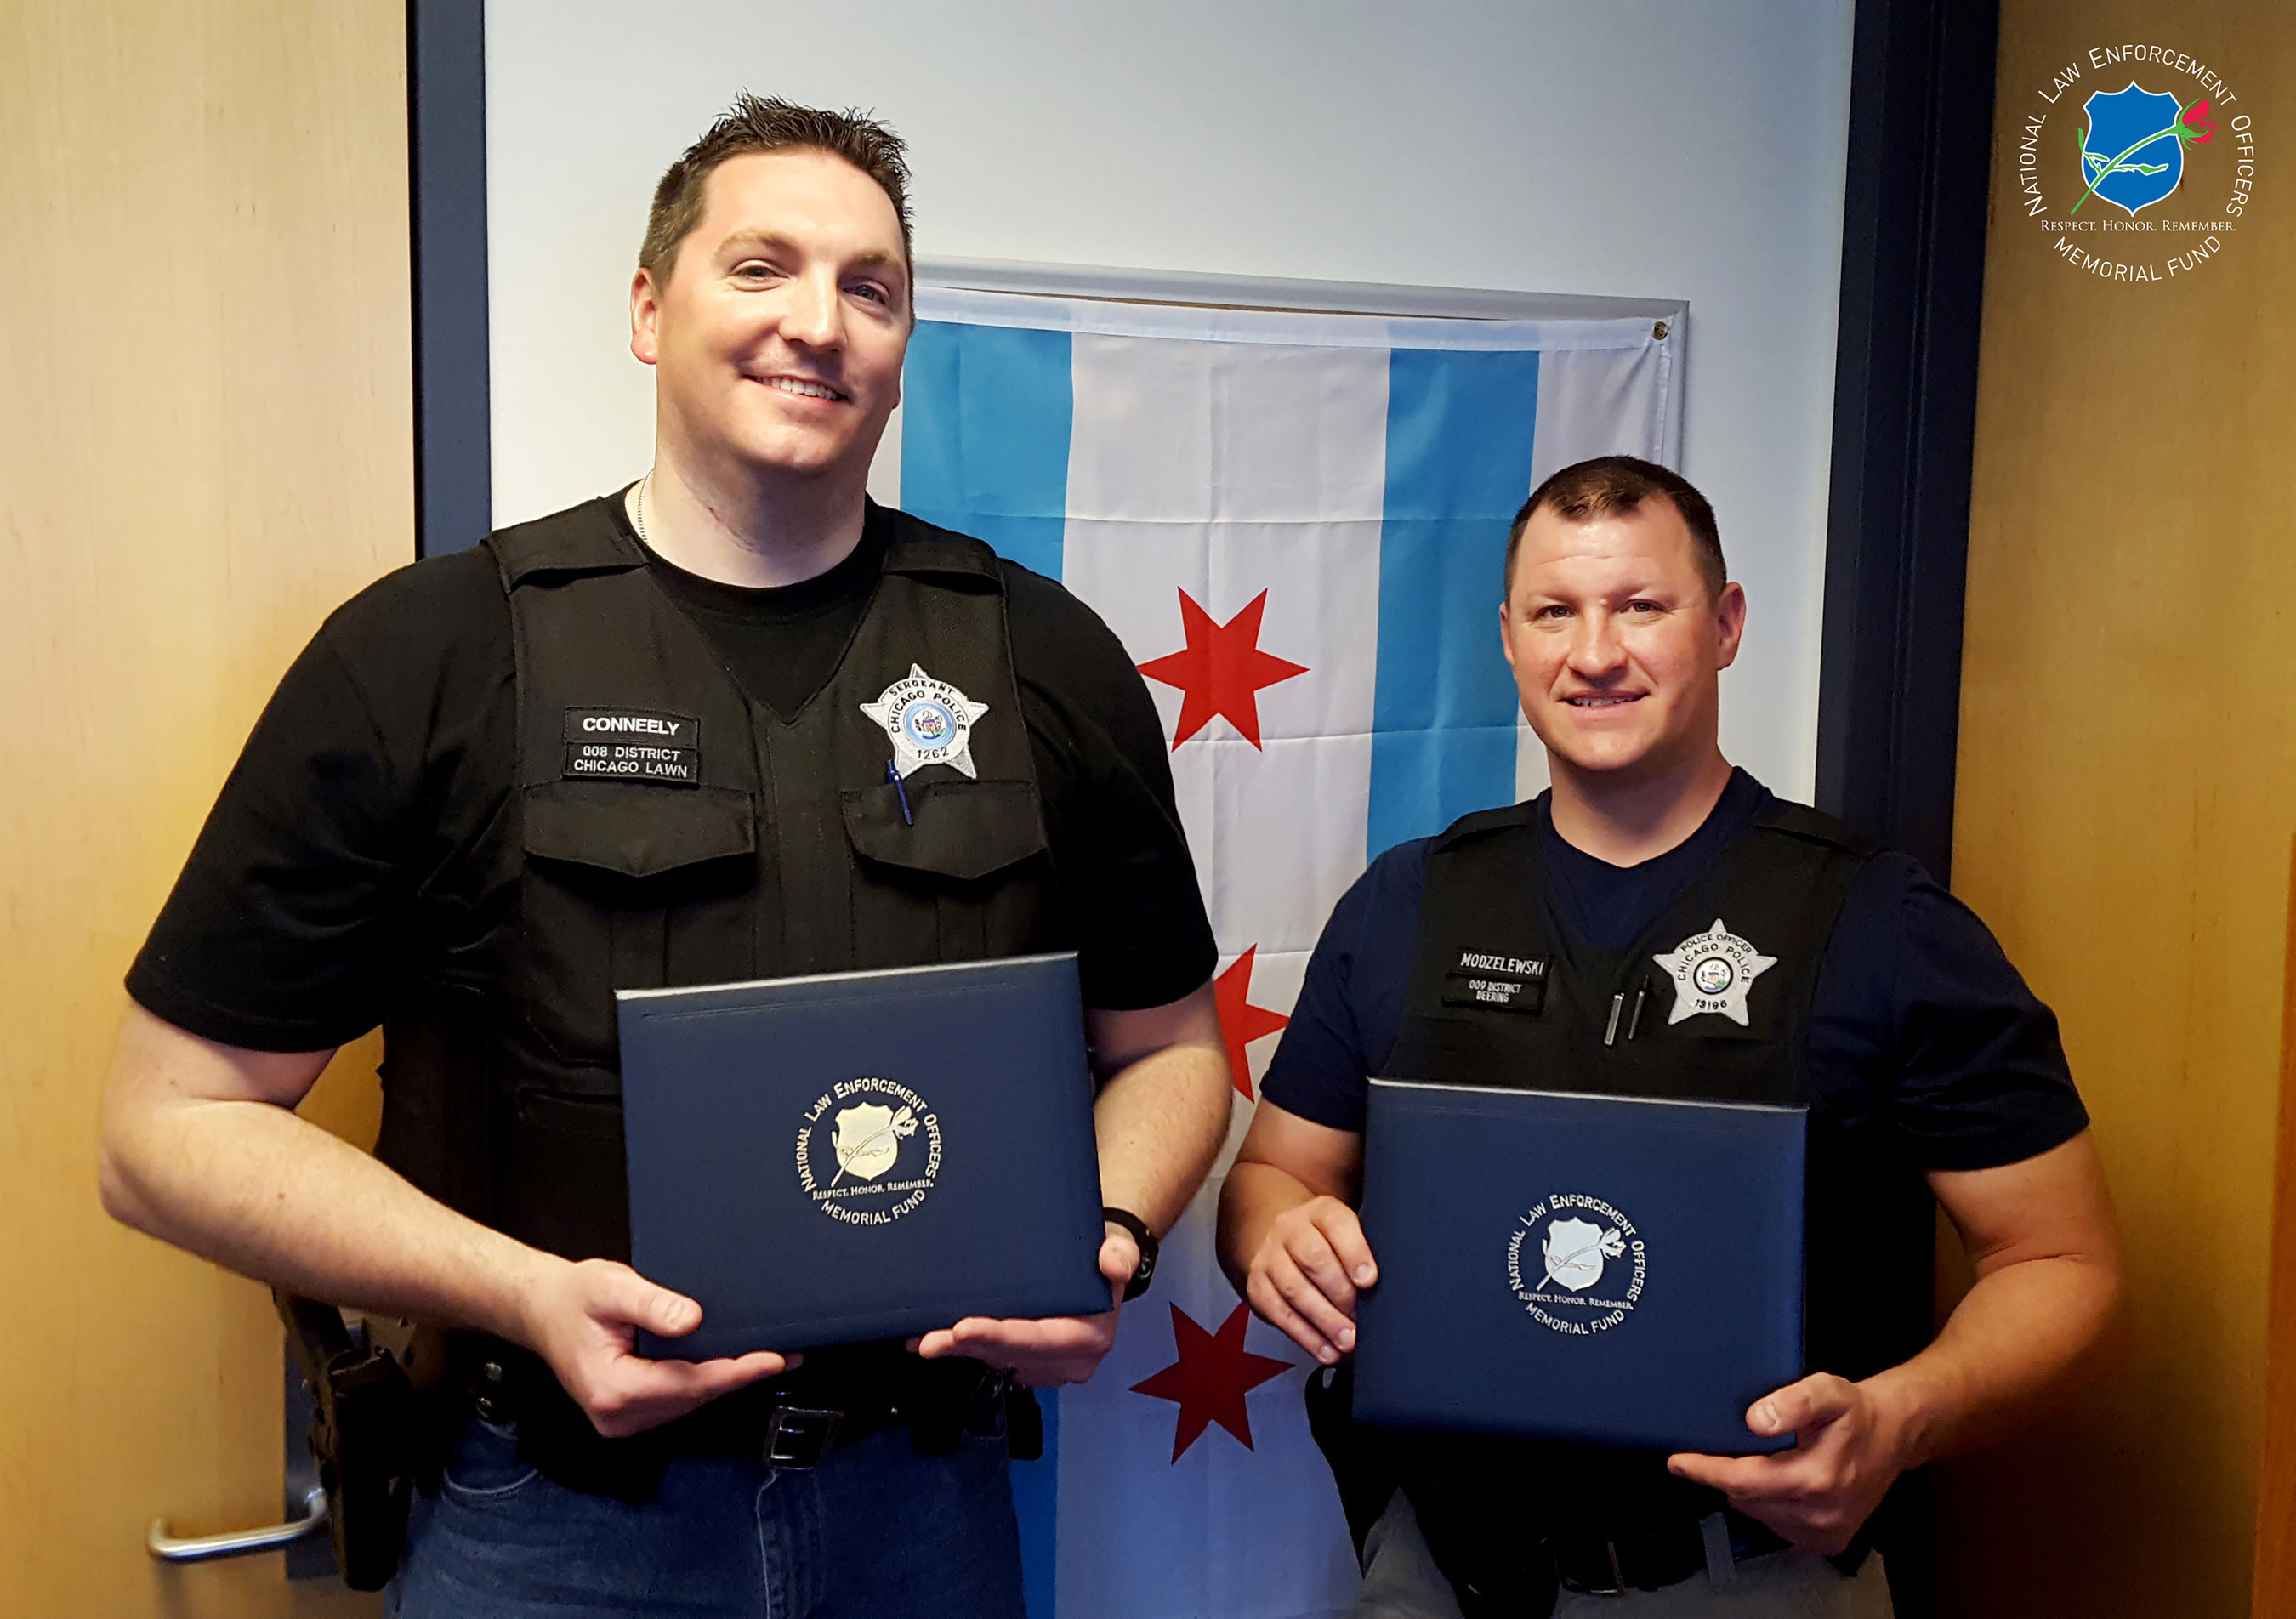 The National Law Enforcement Officers Memorial Fund has selected Sergeant John Conneely and Officer Michael Modzelewski of the Chicago (IL) Police Department, as the recipients of its Officer of the Month Award for April 2016.